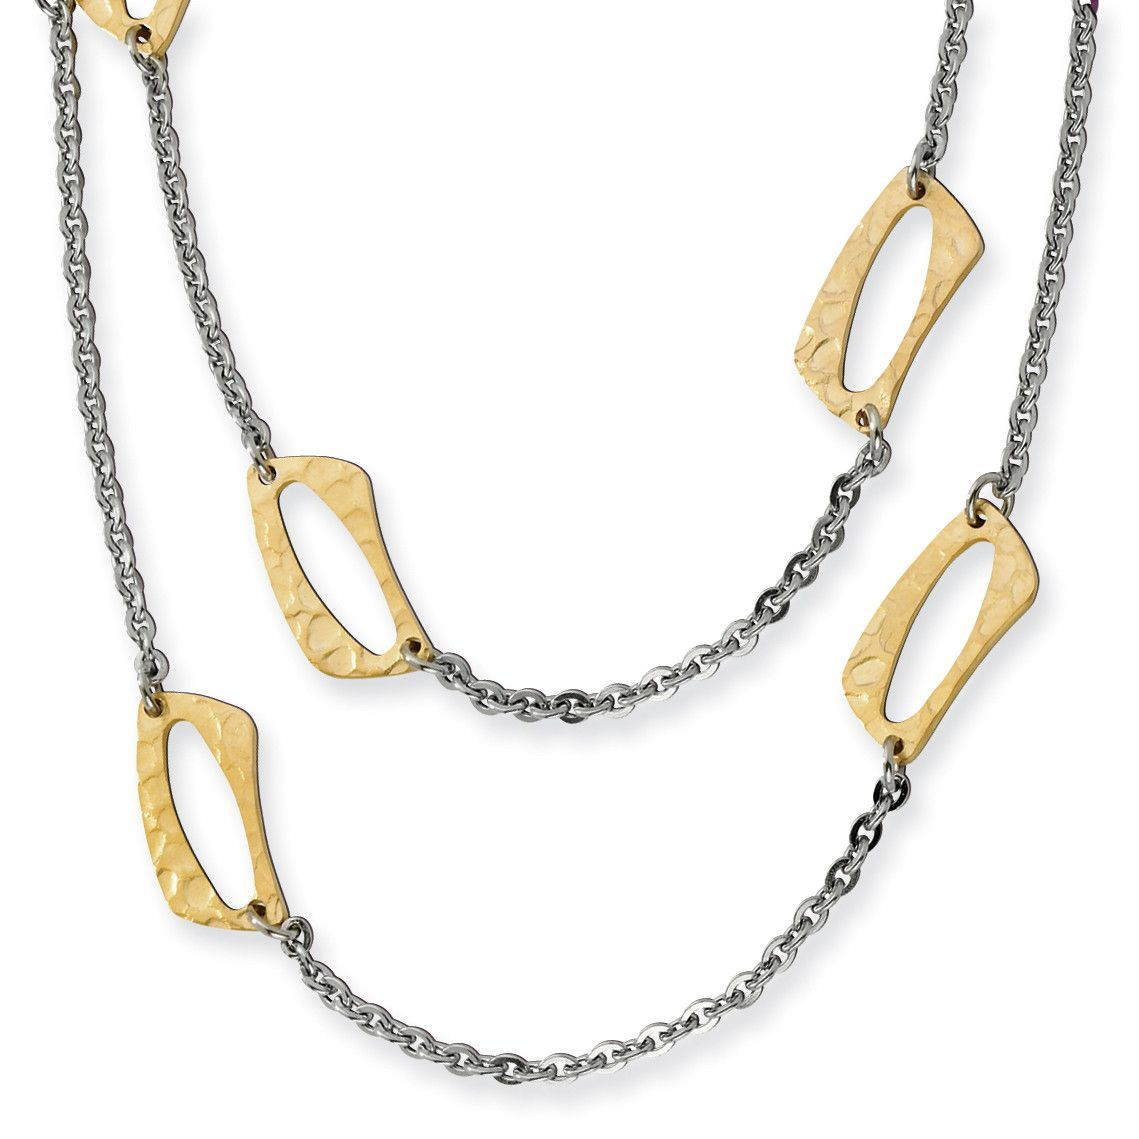 Stainless Steel Yellow IP-plated Square Link Necklace SRN401-22